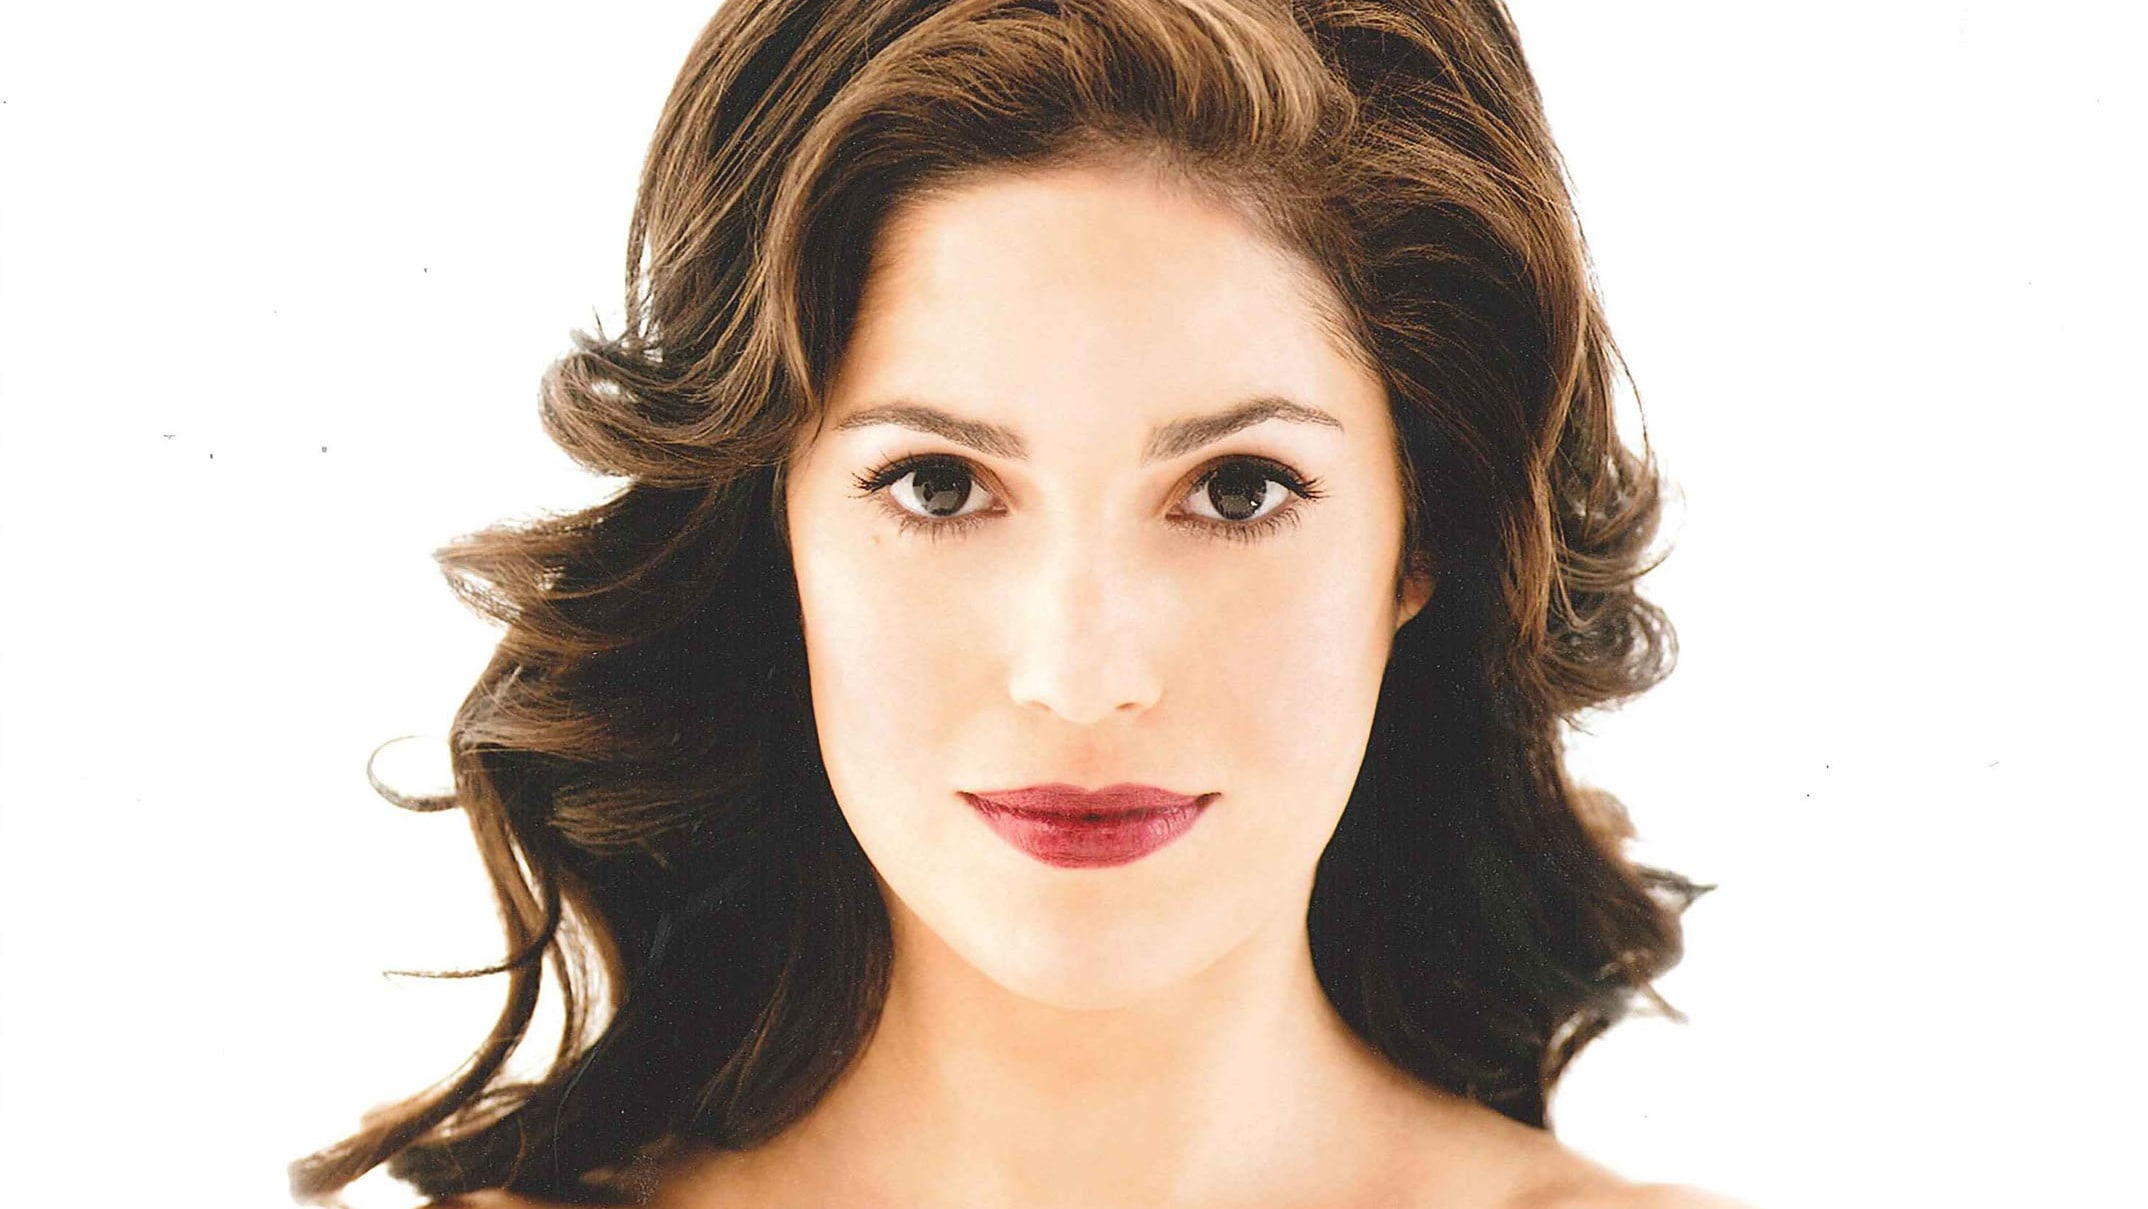 """Ana Ortiz plays """"Isabel"""" in the Disney+ original series, """"Love, Simon"""" Photo credit: Guiliano Bekor Represented by The Gersh Agency and managed by GEF Entertainment."""